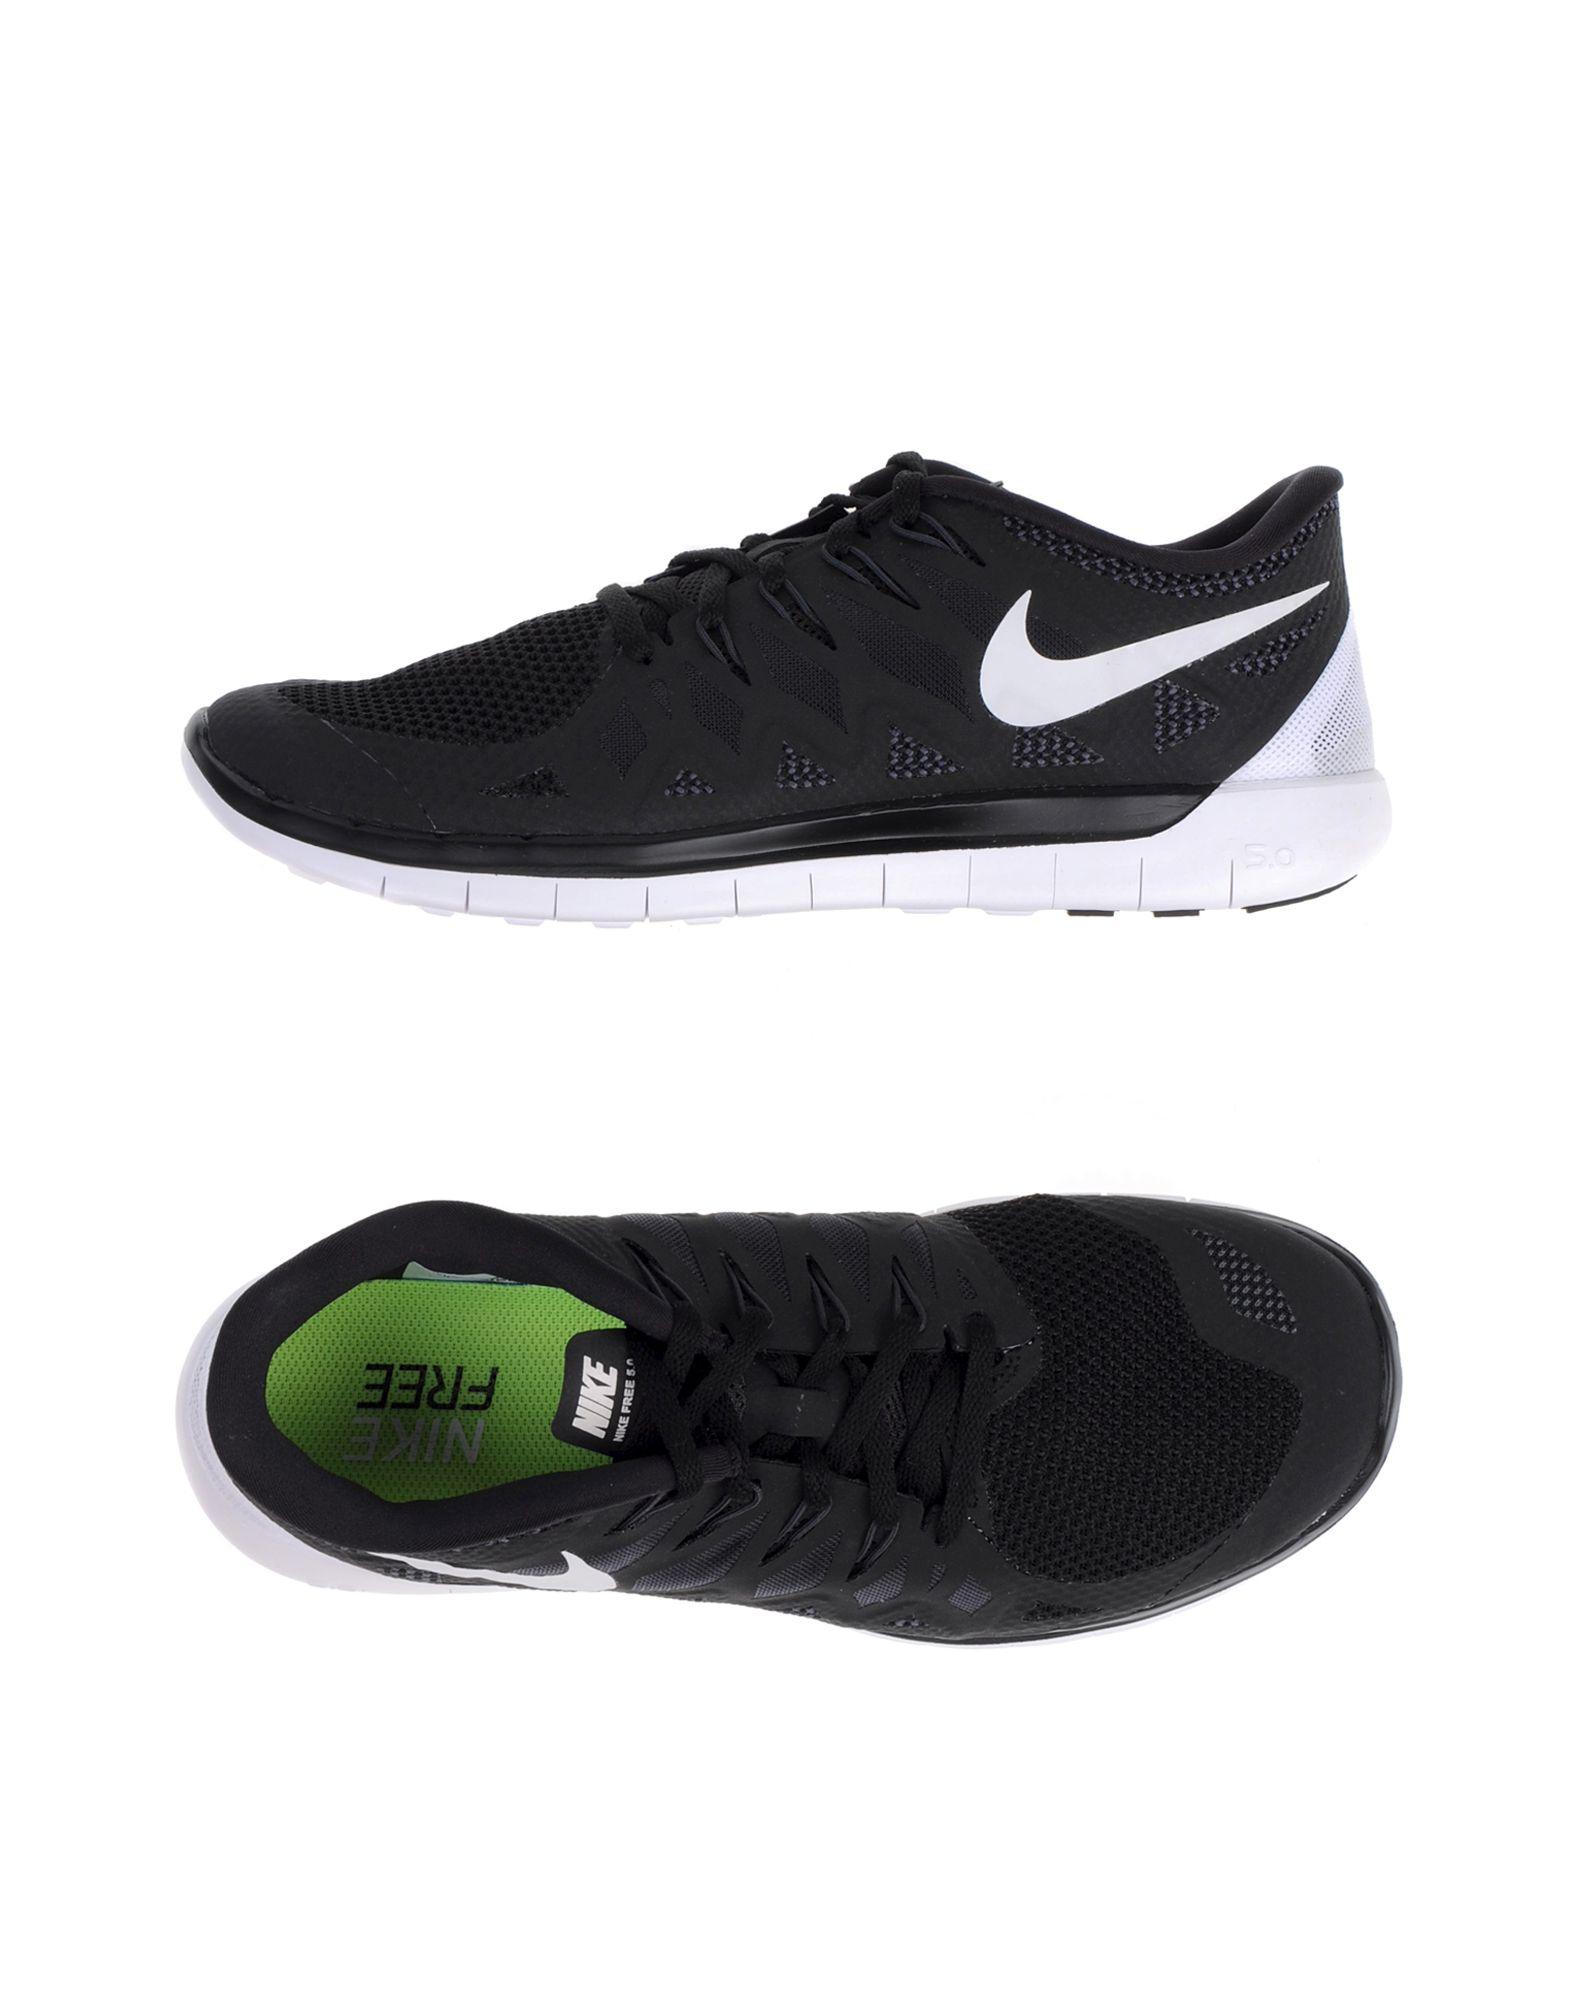 Nike Free 5.0 - Sneakers - Men Nike United Sneakers online on  United Nike Kingdom - 44673304ID 657f0f